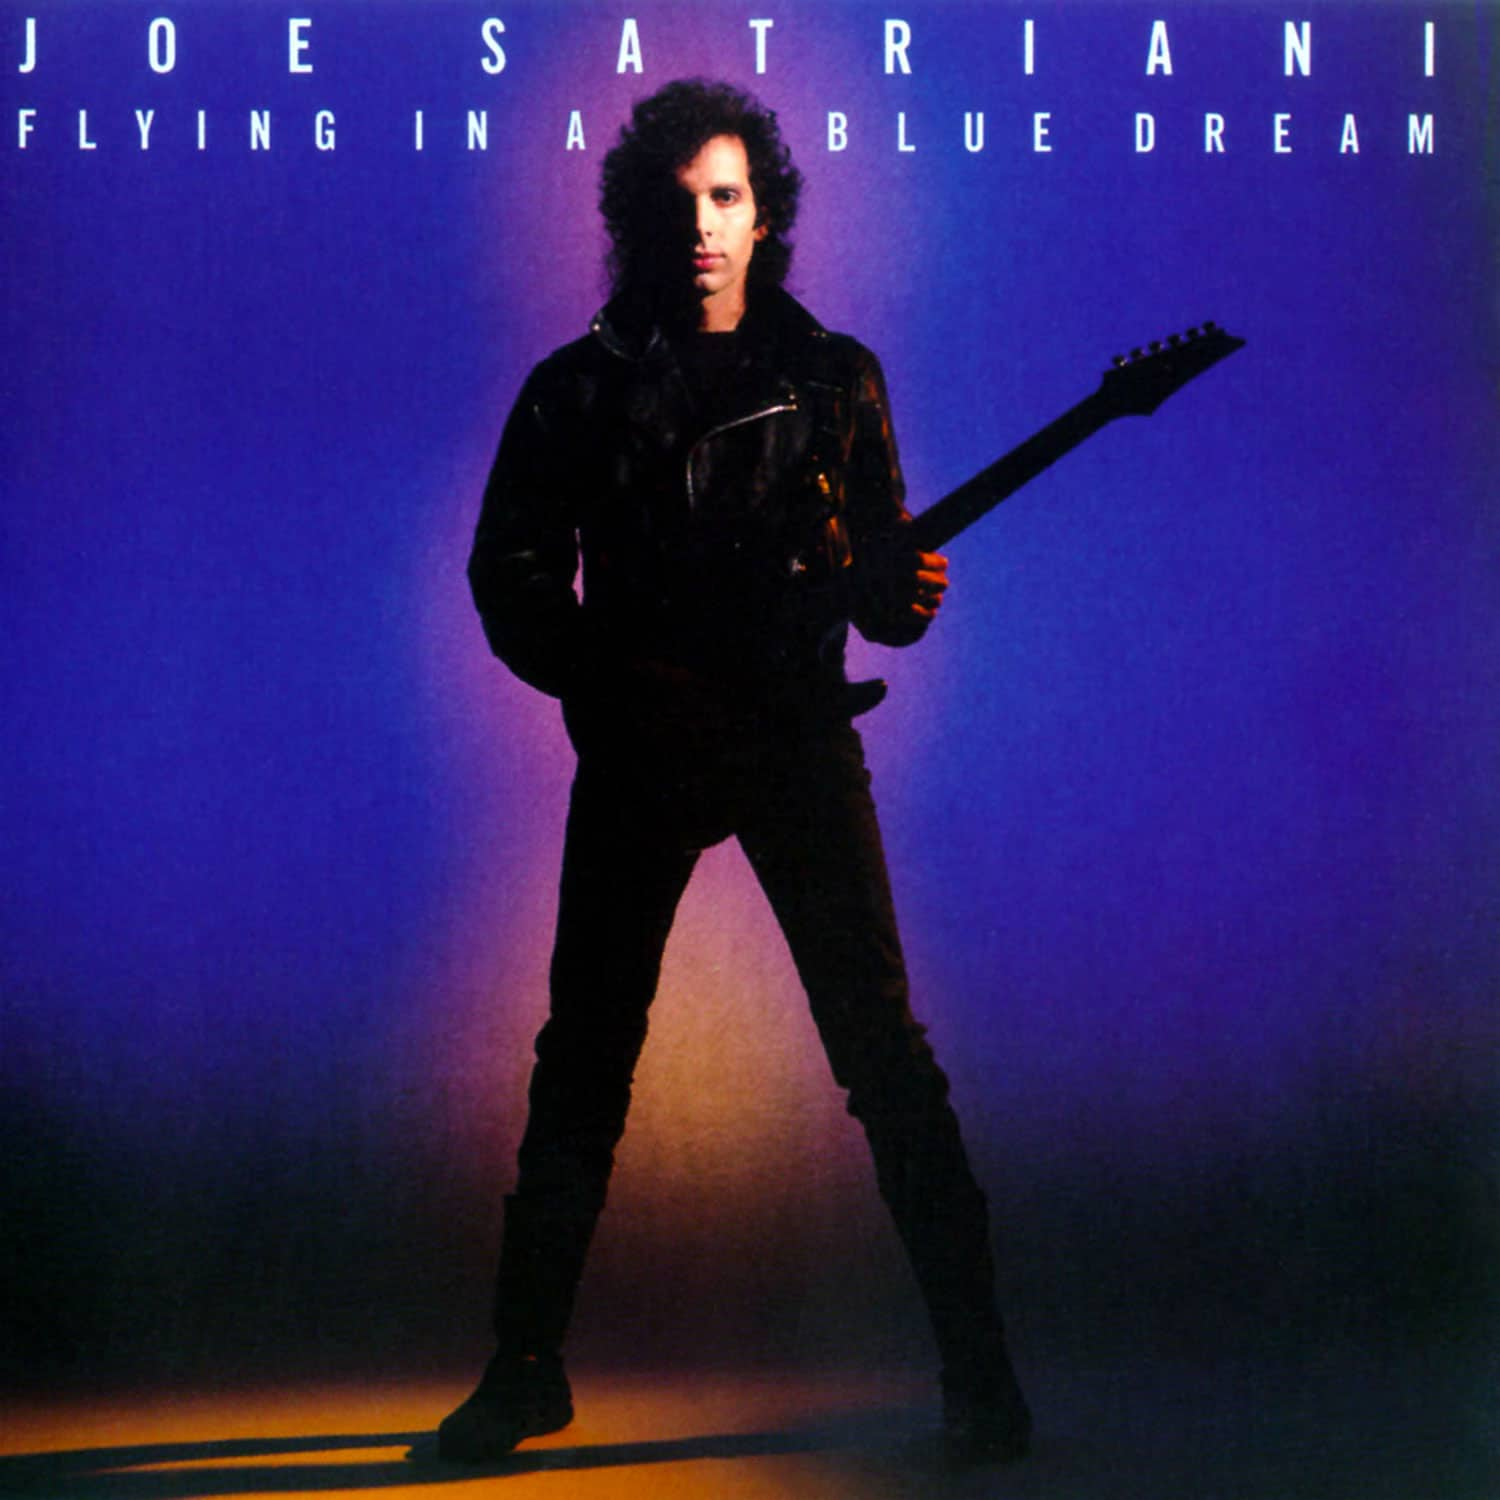 Joe Satriani Flying In A Blue Dream 1989 album CD